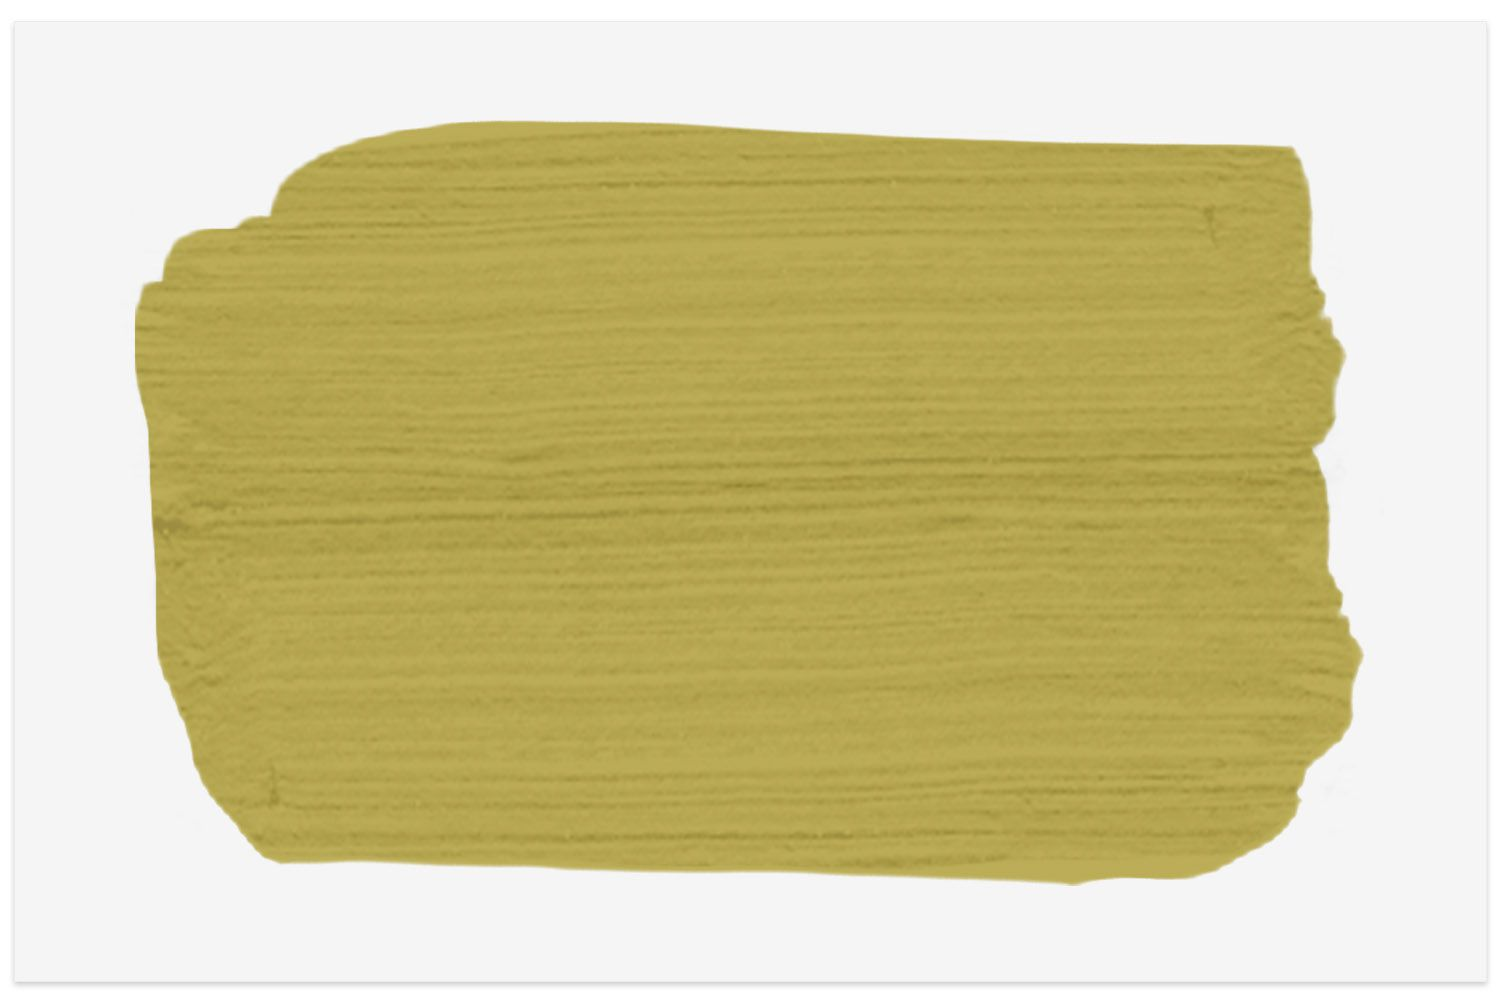 Antiquity paint swatch from Sherwin-Williams